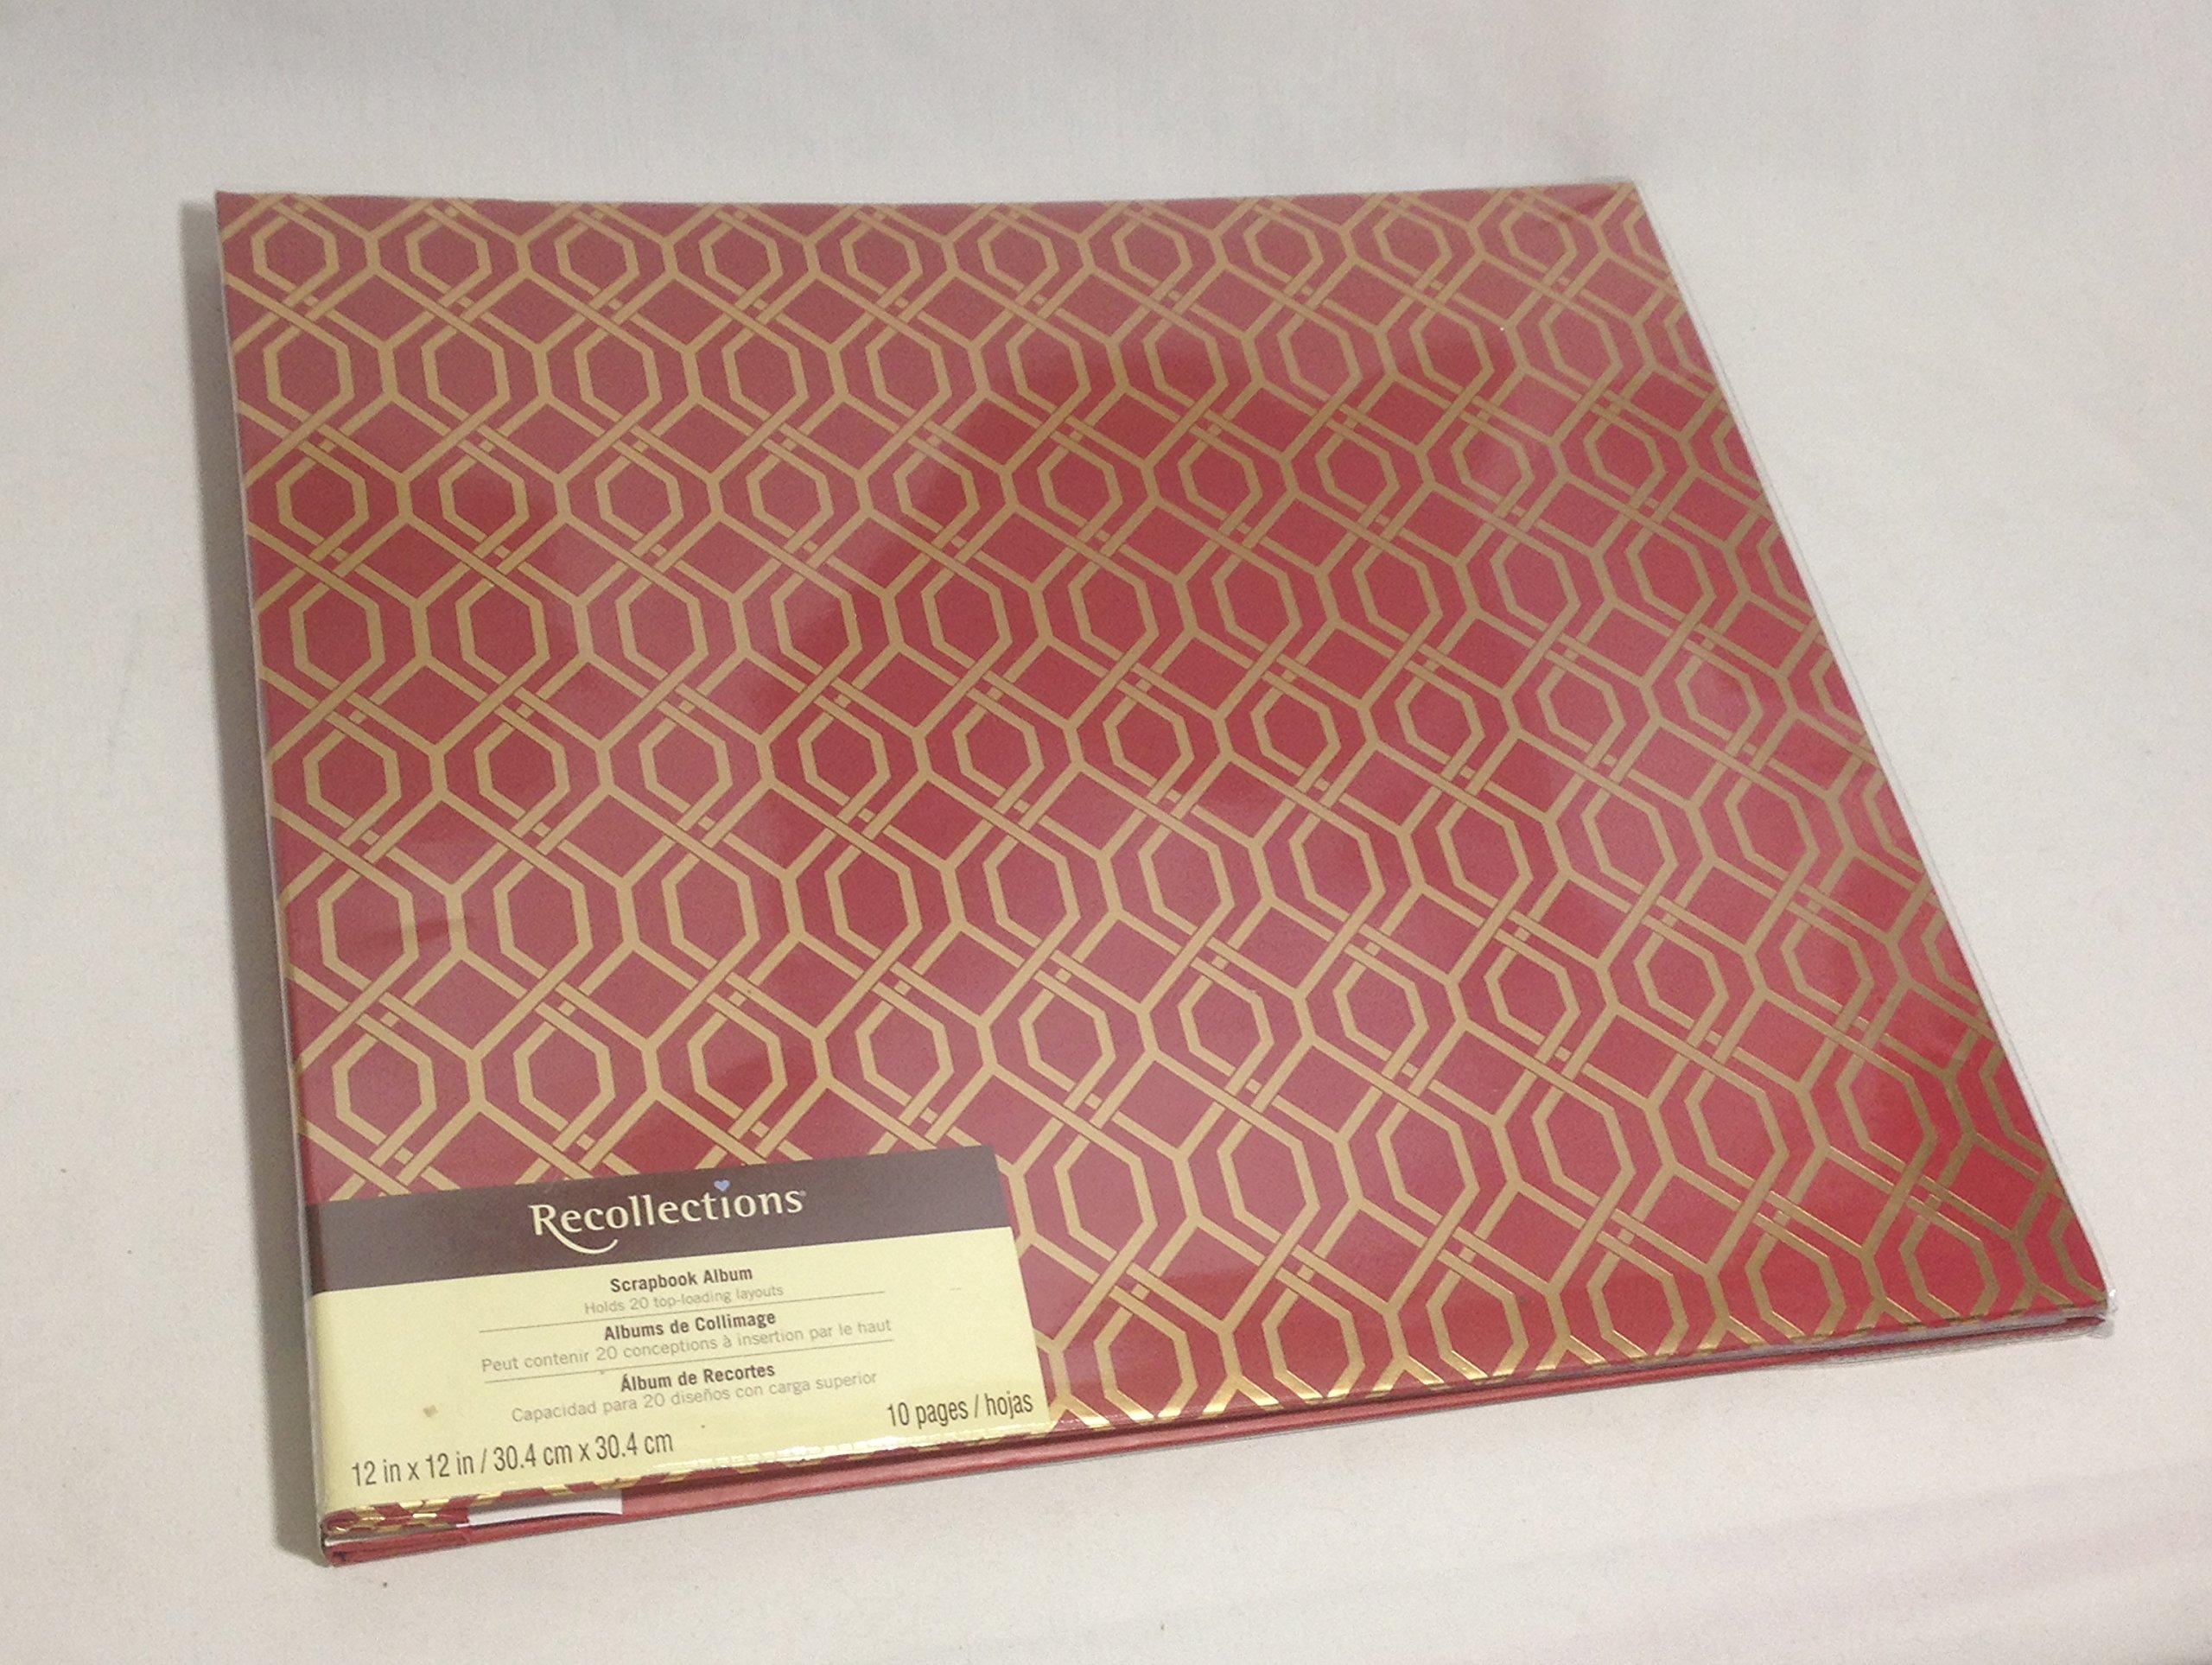 Buy Recollections Scrapbook Album 12x12 With 10 Pages Red Gold